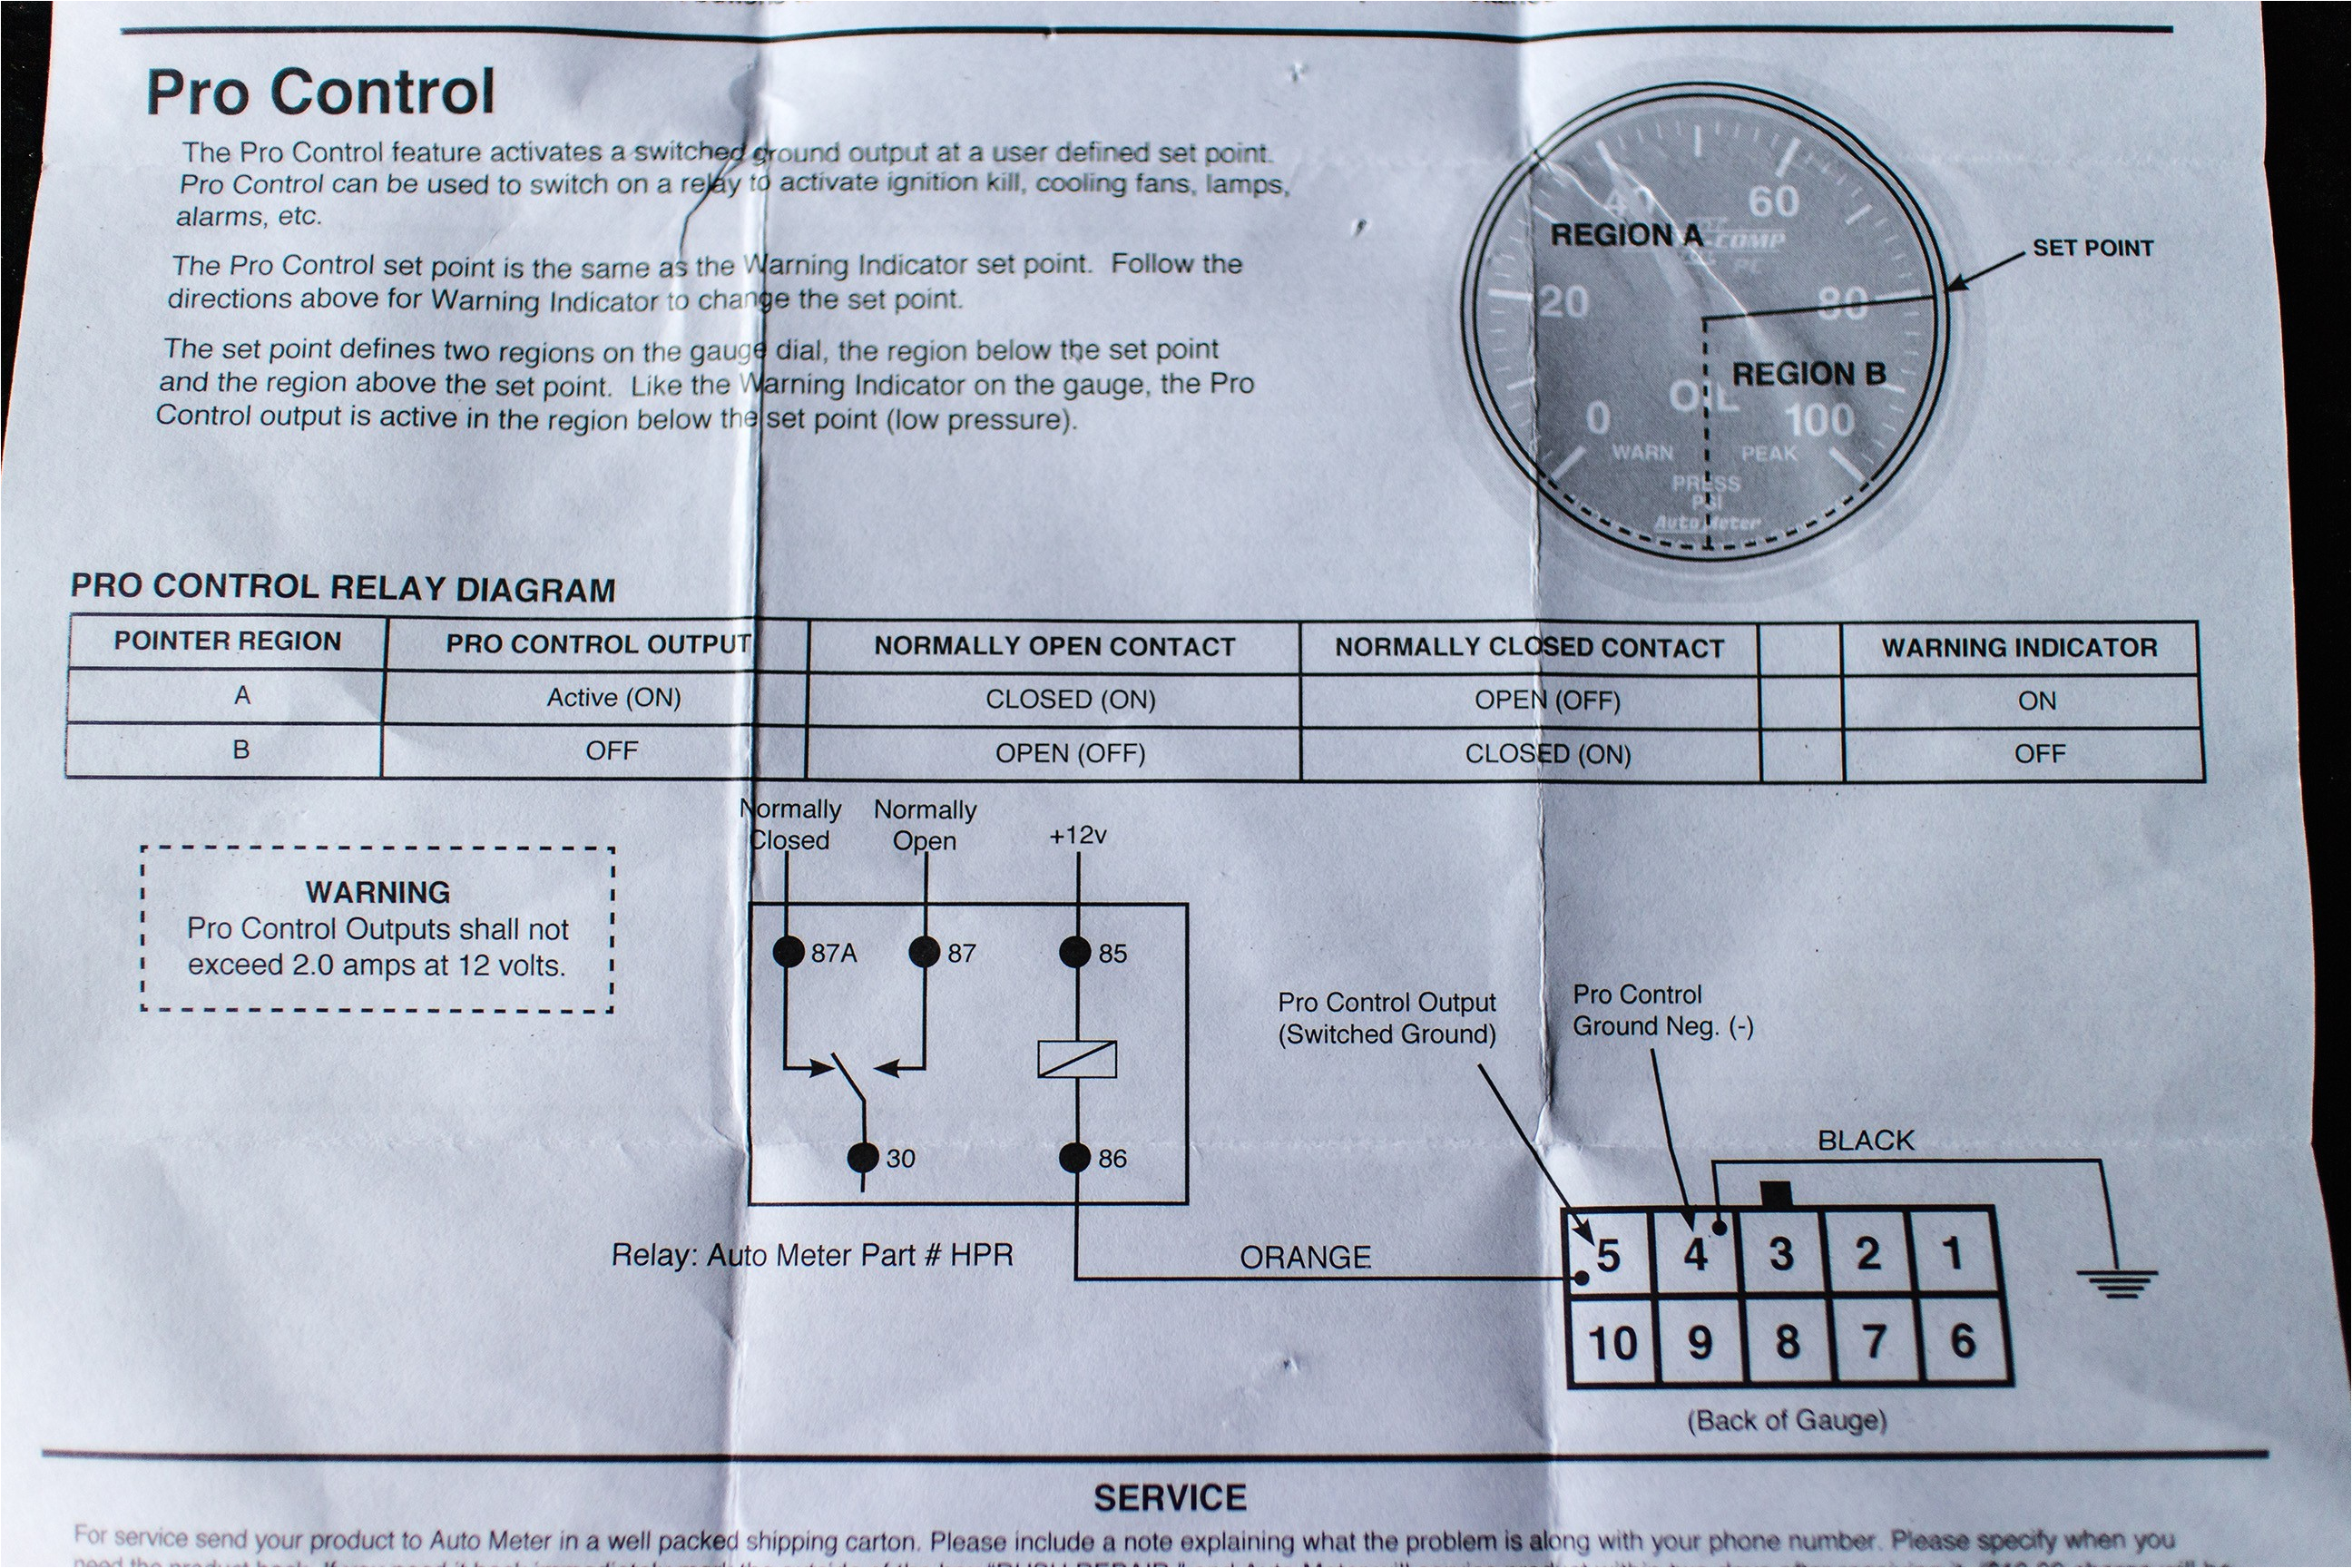 autometer pro comp tach wiring diagram awesome images for image wiregallery of autometer pro comp tach